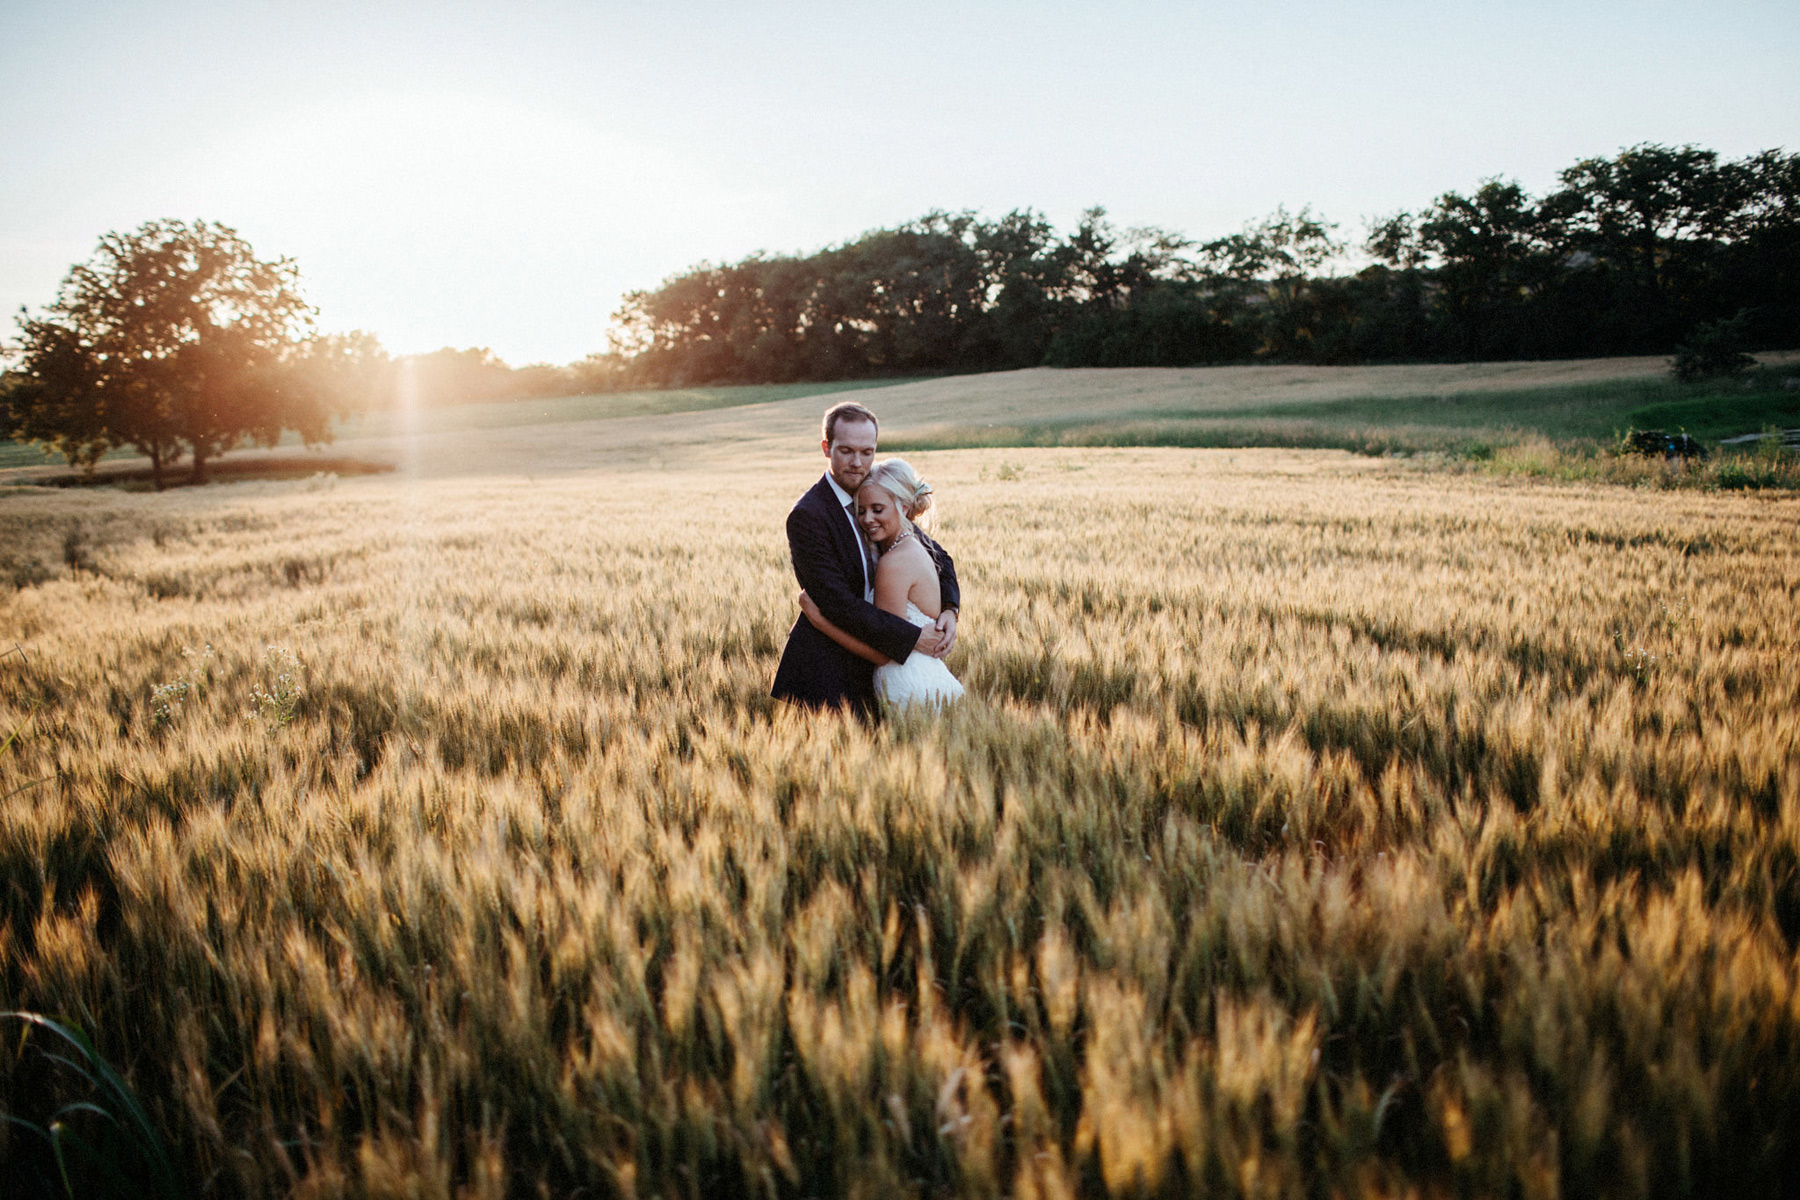 4_Schwinn Produce Farms Summer Wedding Kansas City_Kindling Wedding Photography.JPG